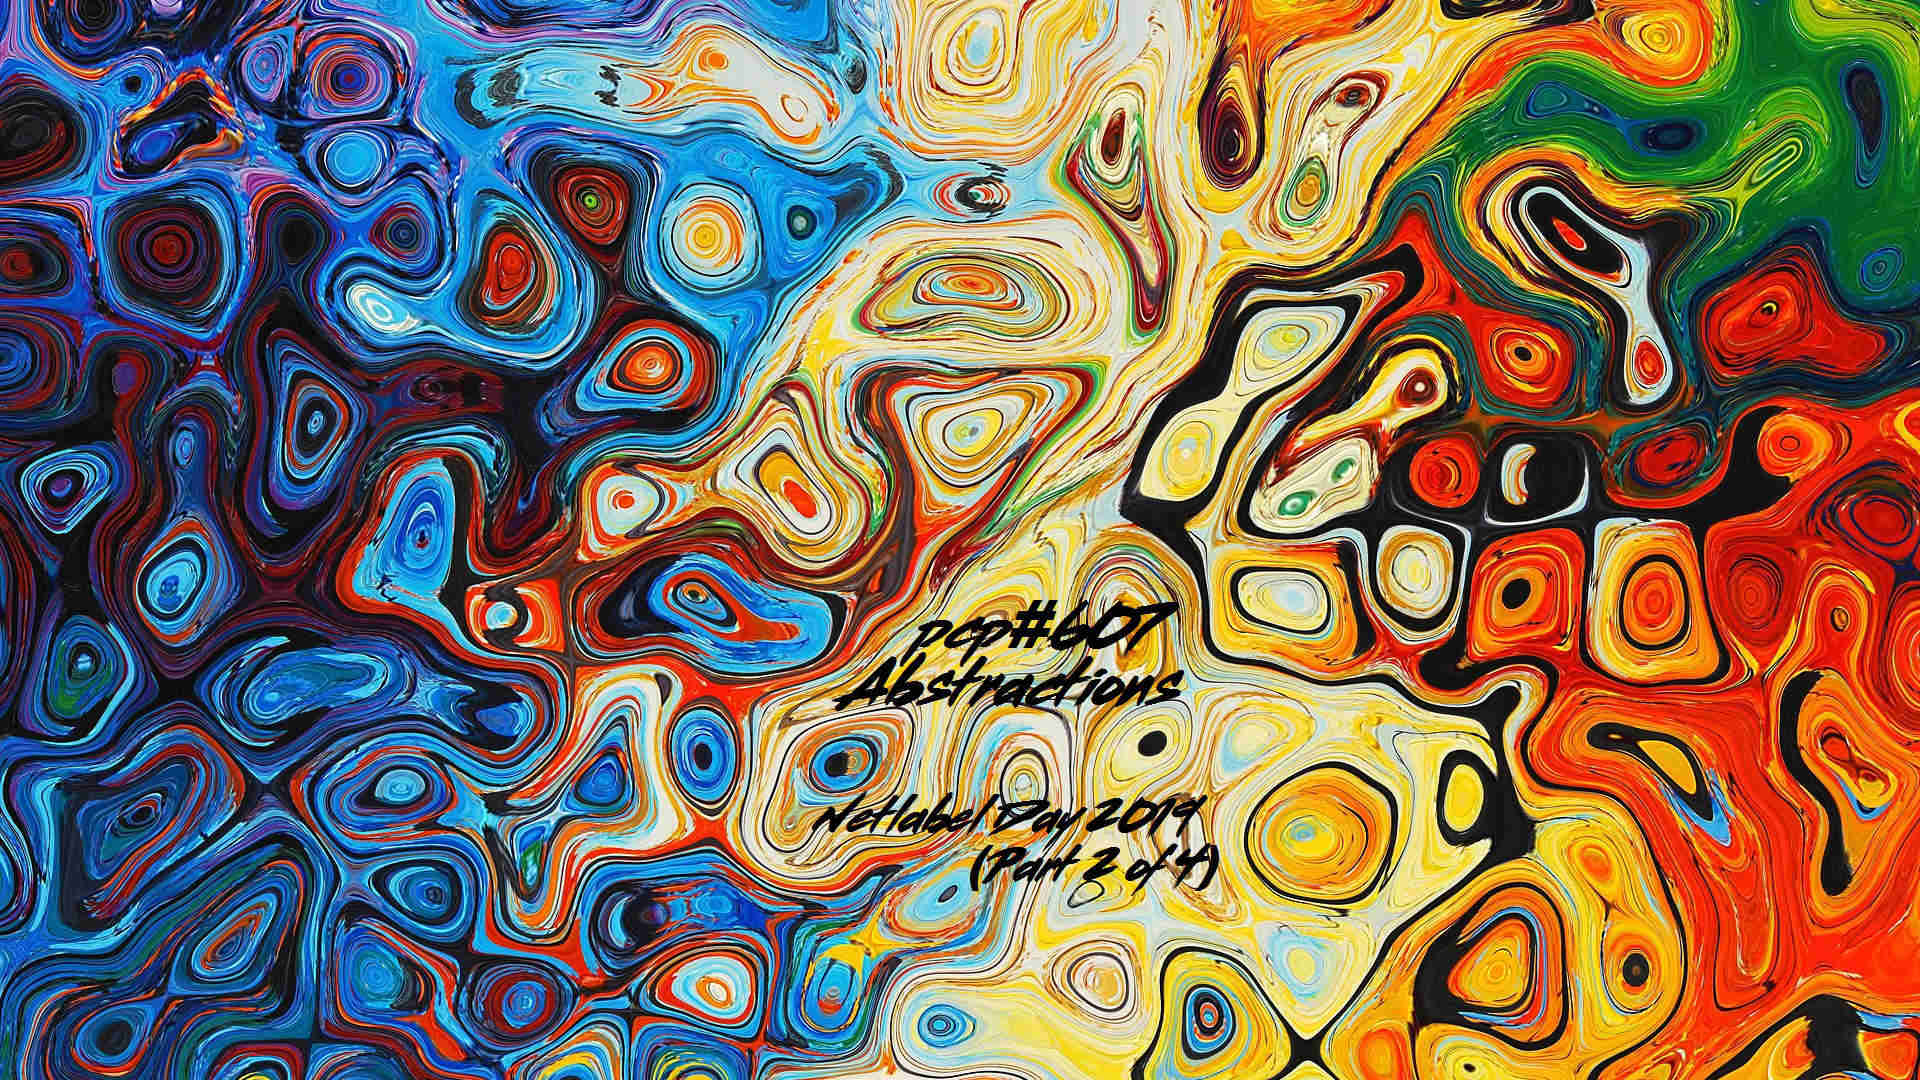 PCP#607... Abstractions... Netlabel Day 2019 (Part 2 of 4)...